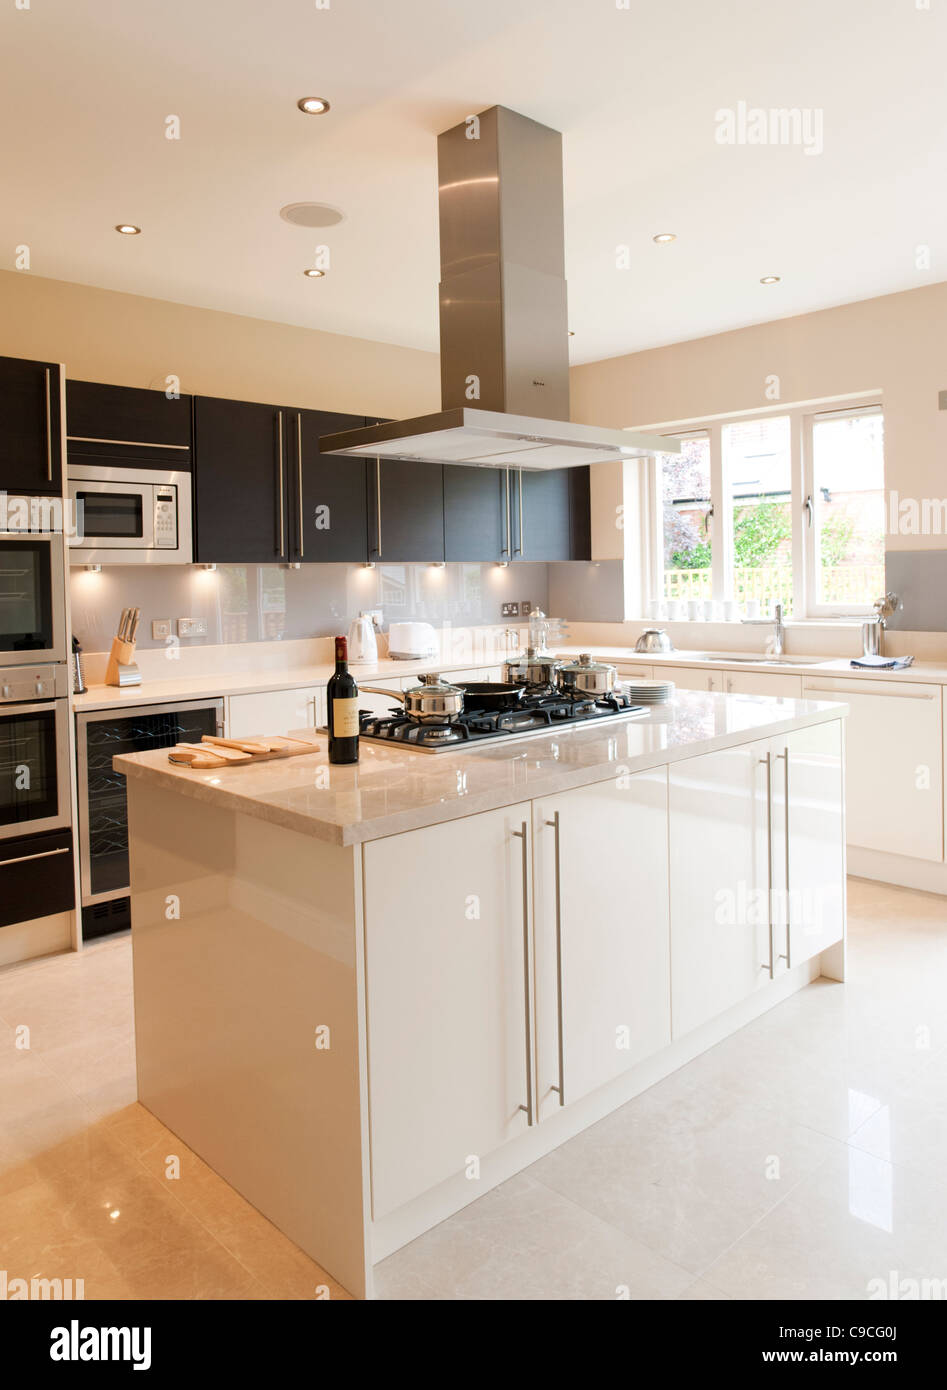 New modern fitted kitchen in large house, England, UK - Stock Image